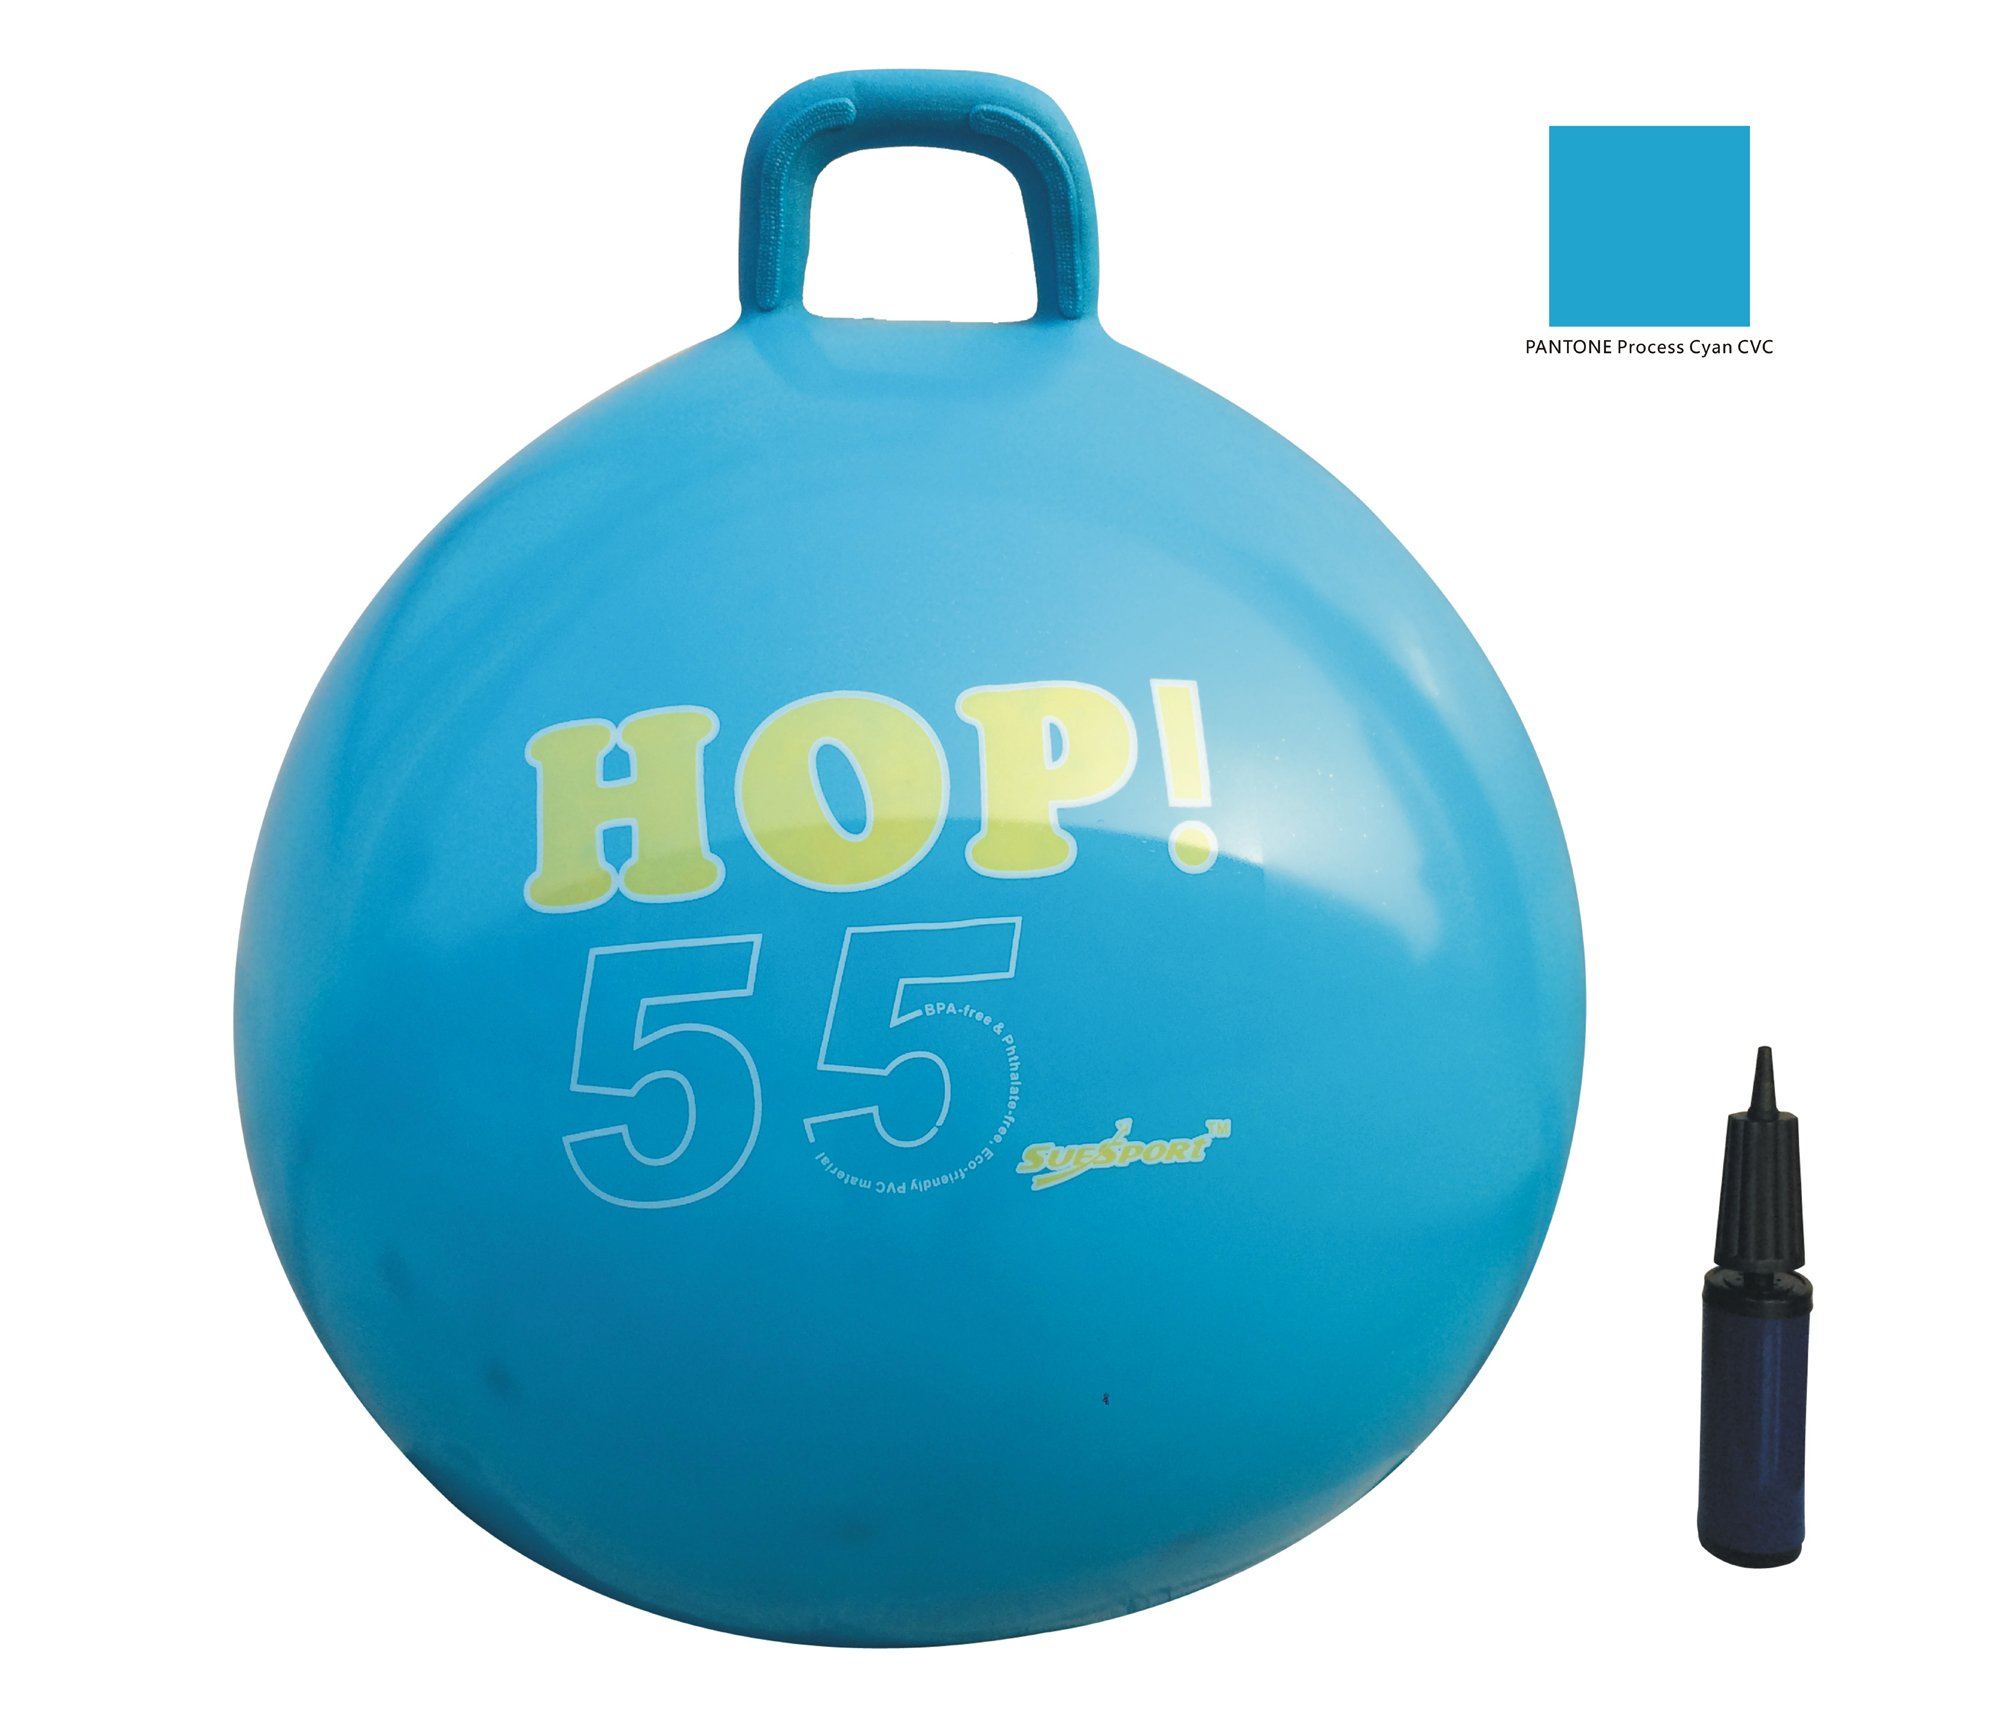 SUESPORT Hopper Ball Kit,Pump Included, 22in/55cm, Blue, Hop Ball, Kangaroo Bouncer, Hoppity Hop, Sit and Bounce, Jumping Ball, 2-Size by 3-Colors Available